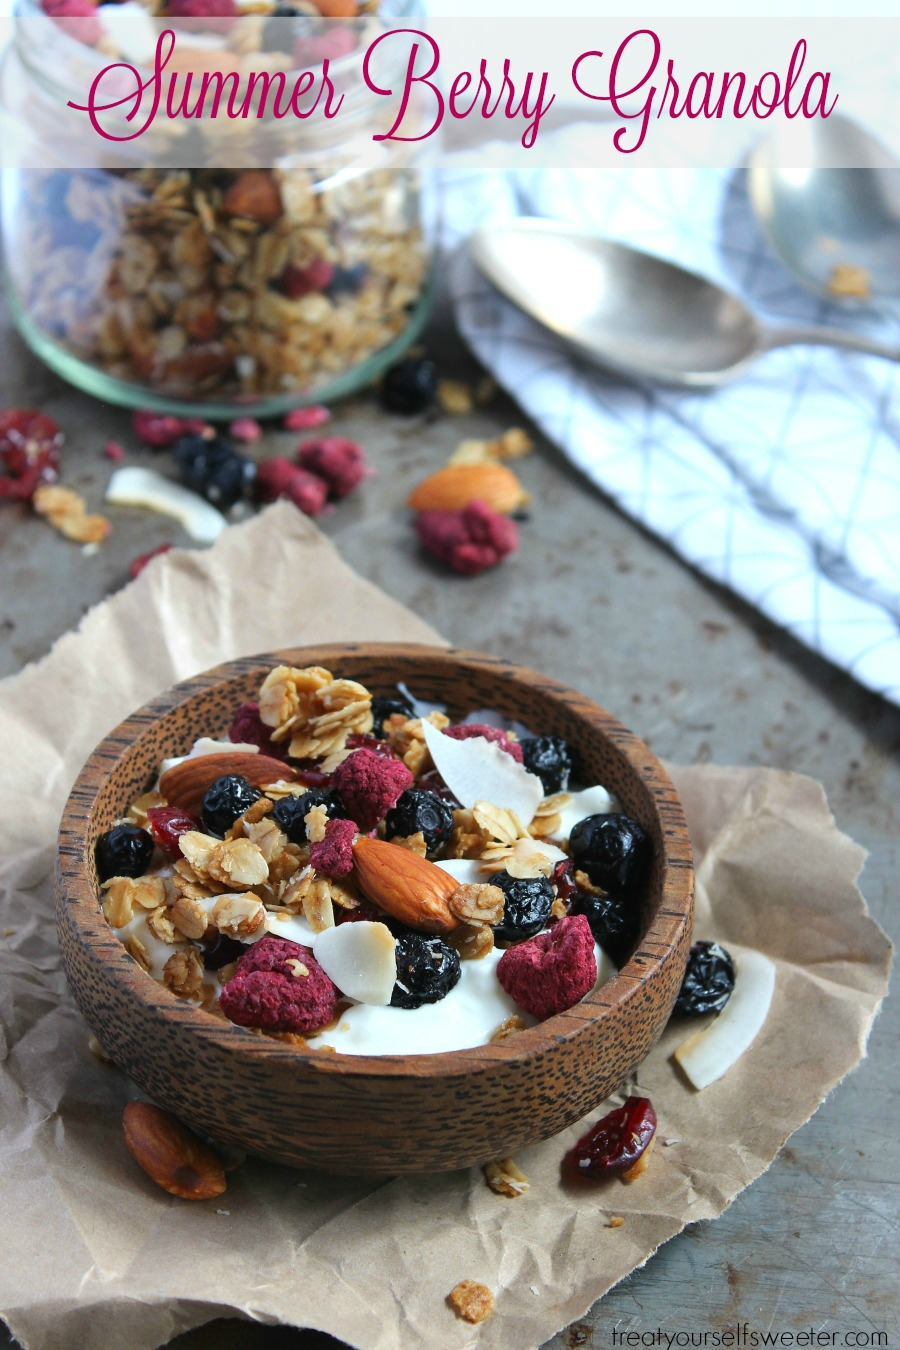 Toasted Summer Berry Granola; crispy, crunchy, sweet summer berry granola with oats and coconut. So delicious, you'll want to eat it by the handful!